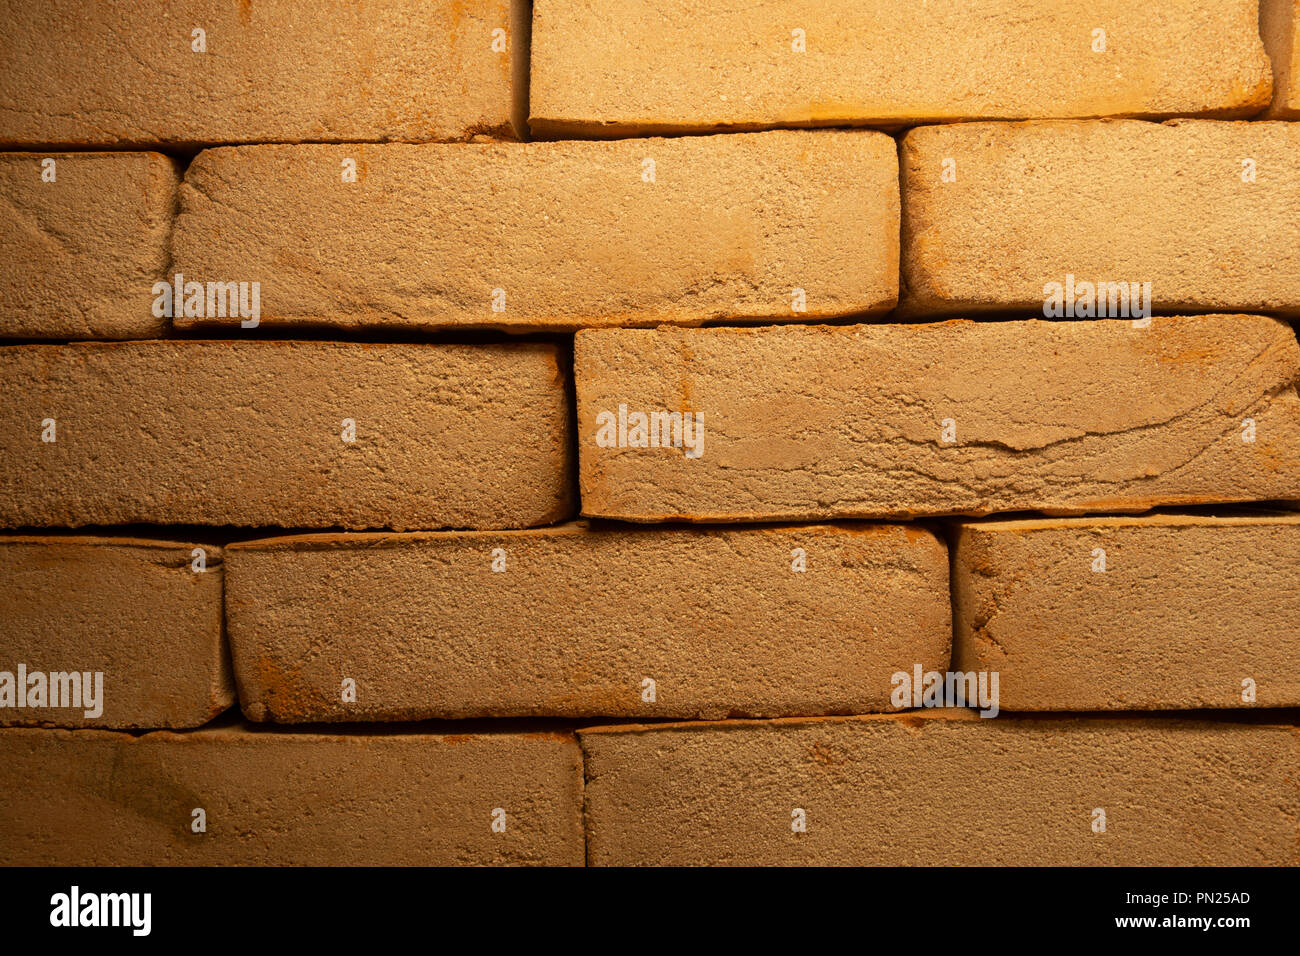 Cracked Dark Red Old Brick Wall Texture. Damaged Brown Abstract Blank Stonewall Background. Ruinous Brickwall Dilapidation In Places Covered With Moss - Stock Image